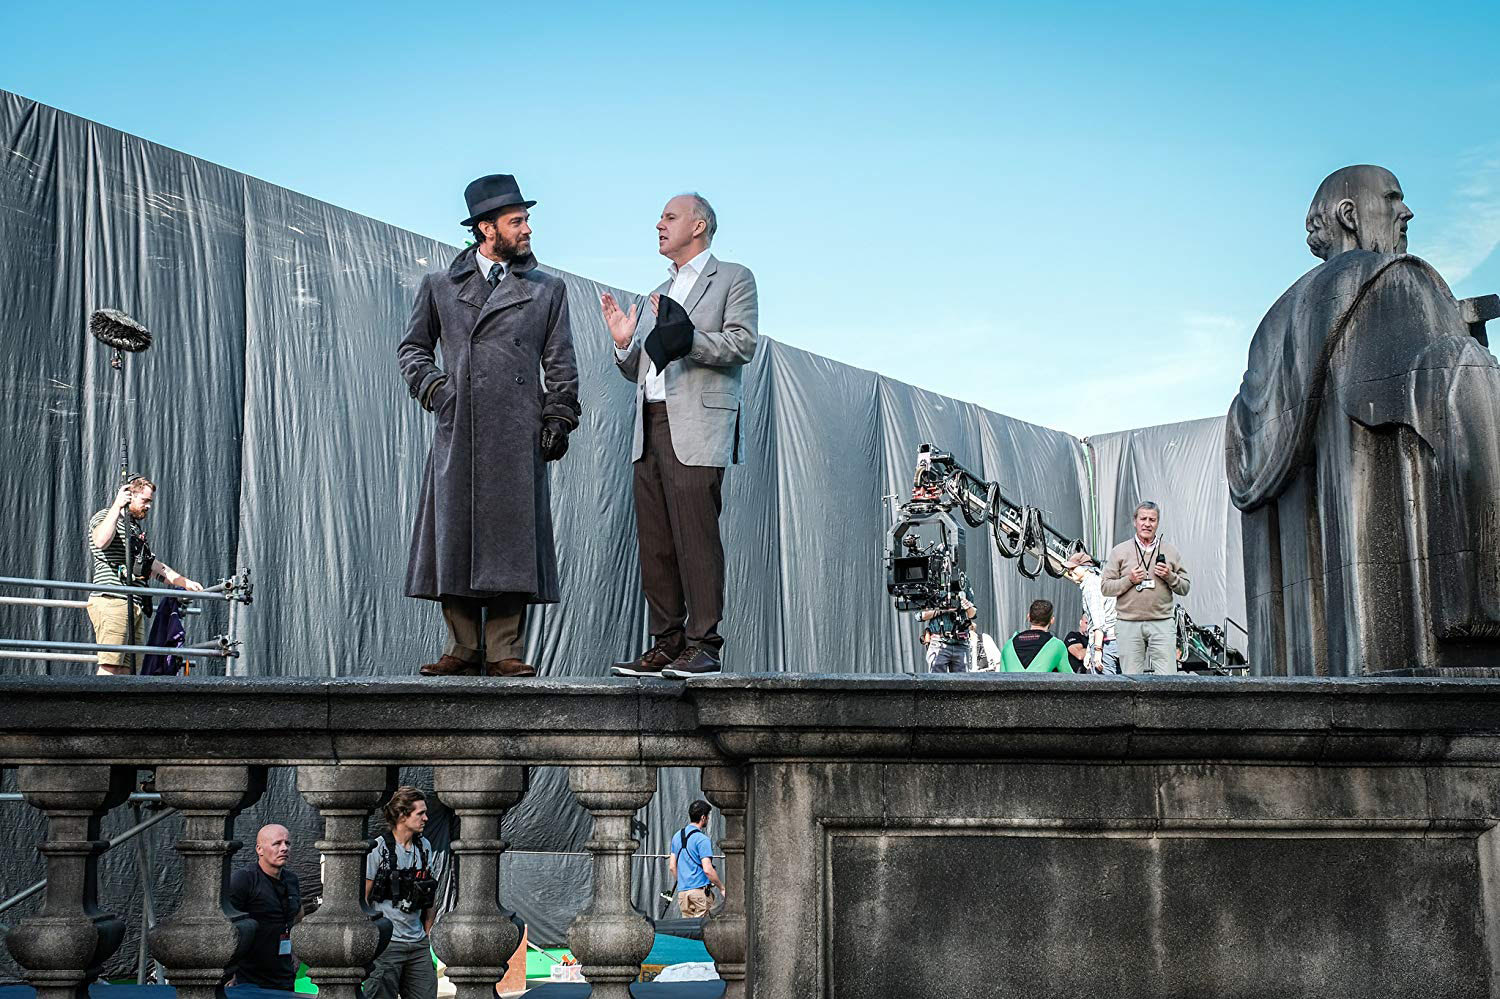 David Yates directs Dumbledore's London rooftop scene